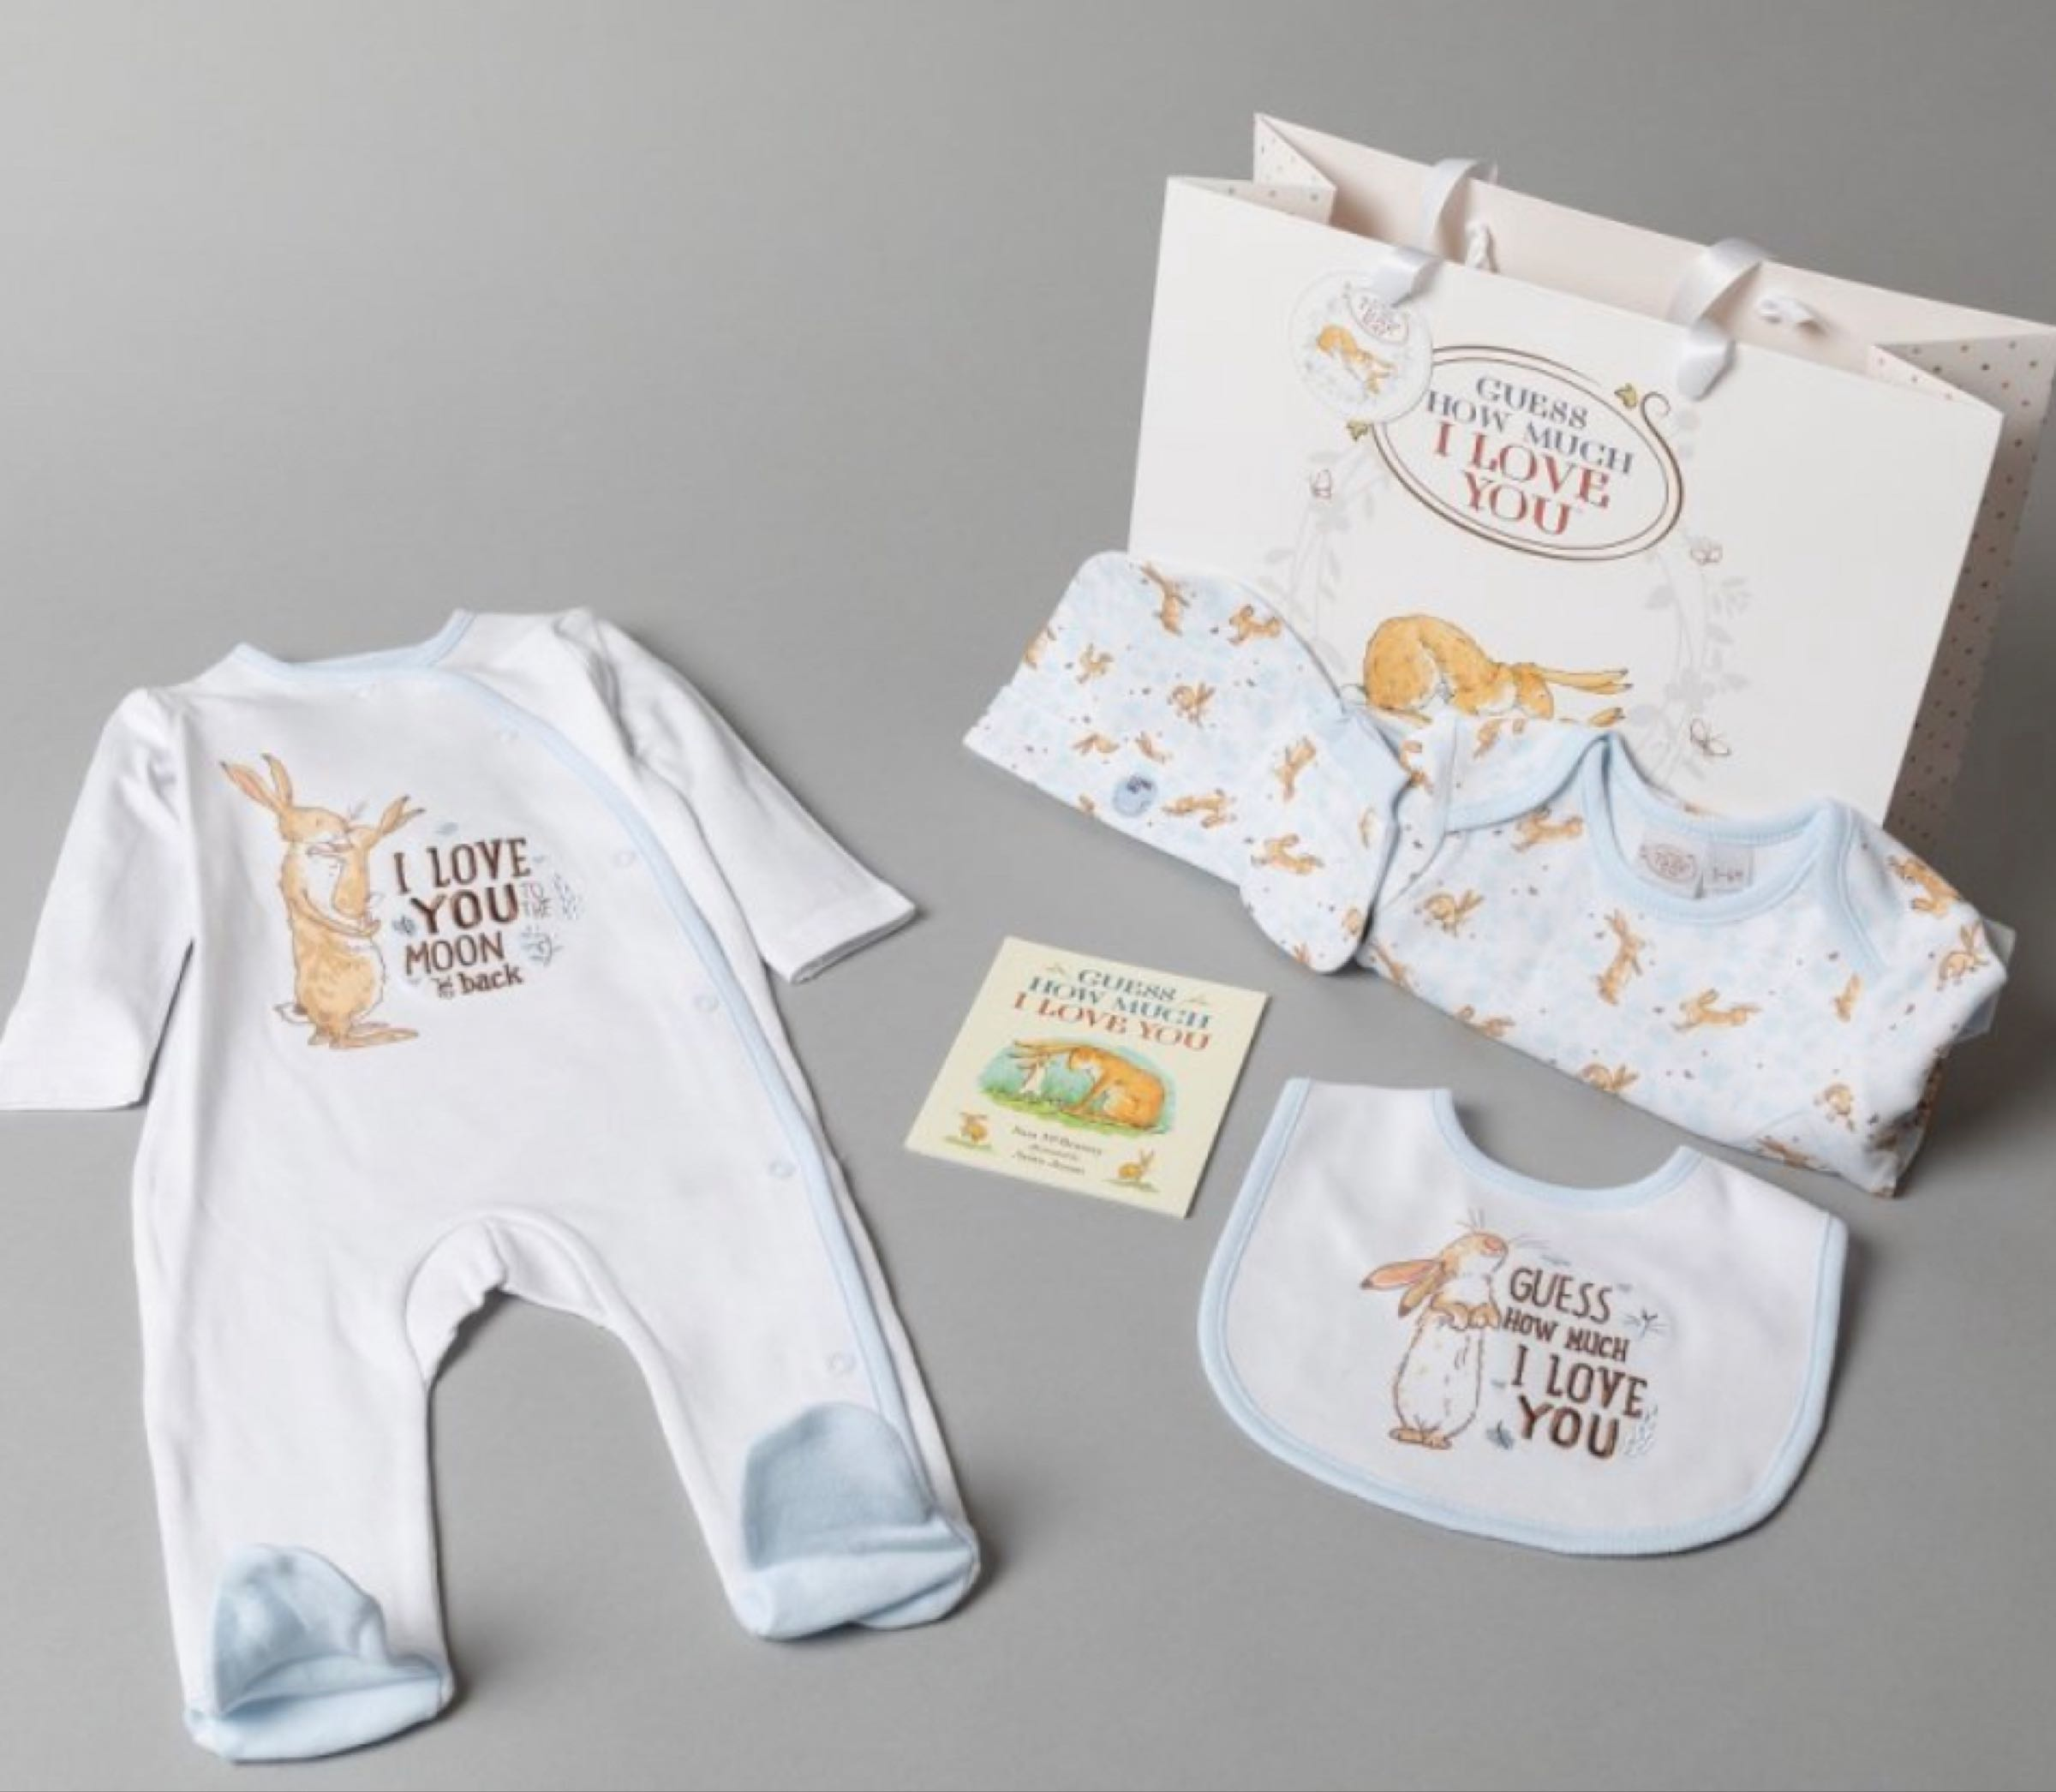 Guess How Much I Love You Layette Gift Bag Set   -grey  includes sleepsuit, bodysuit, mitts, bib, hat, book and gift bag - Blue